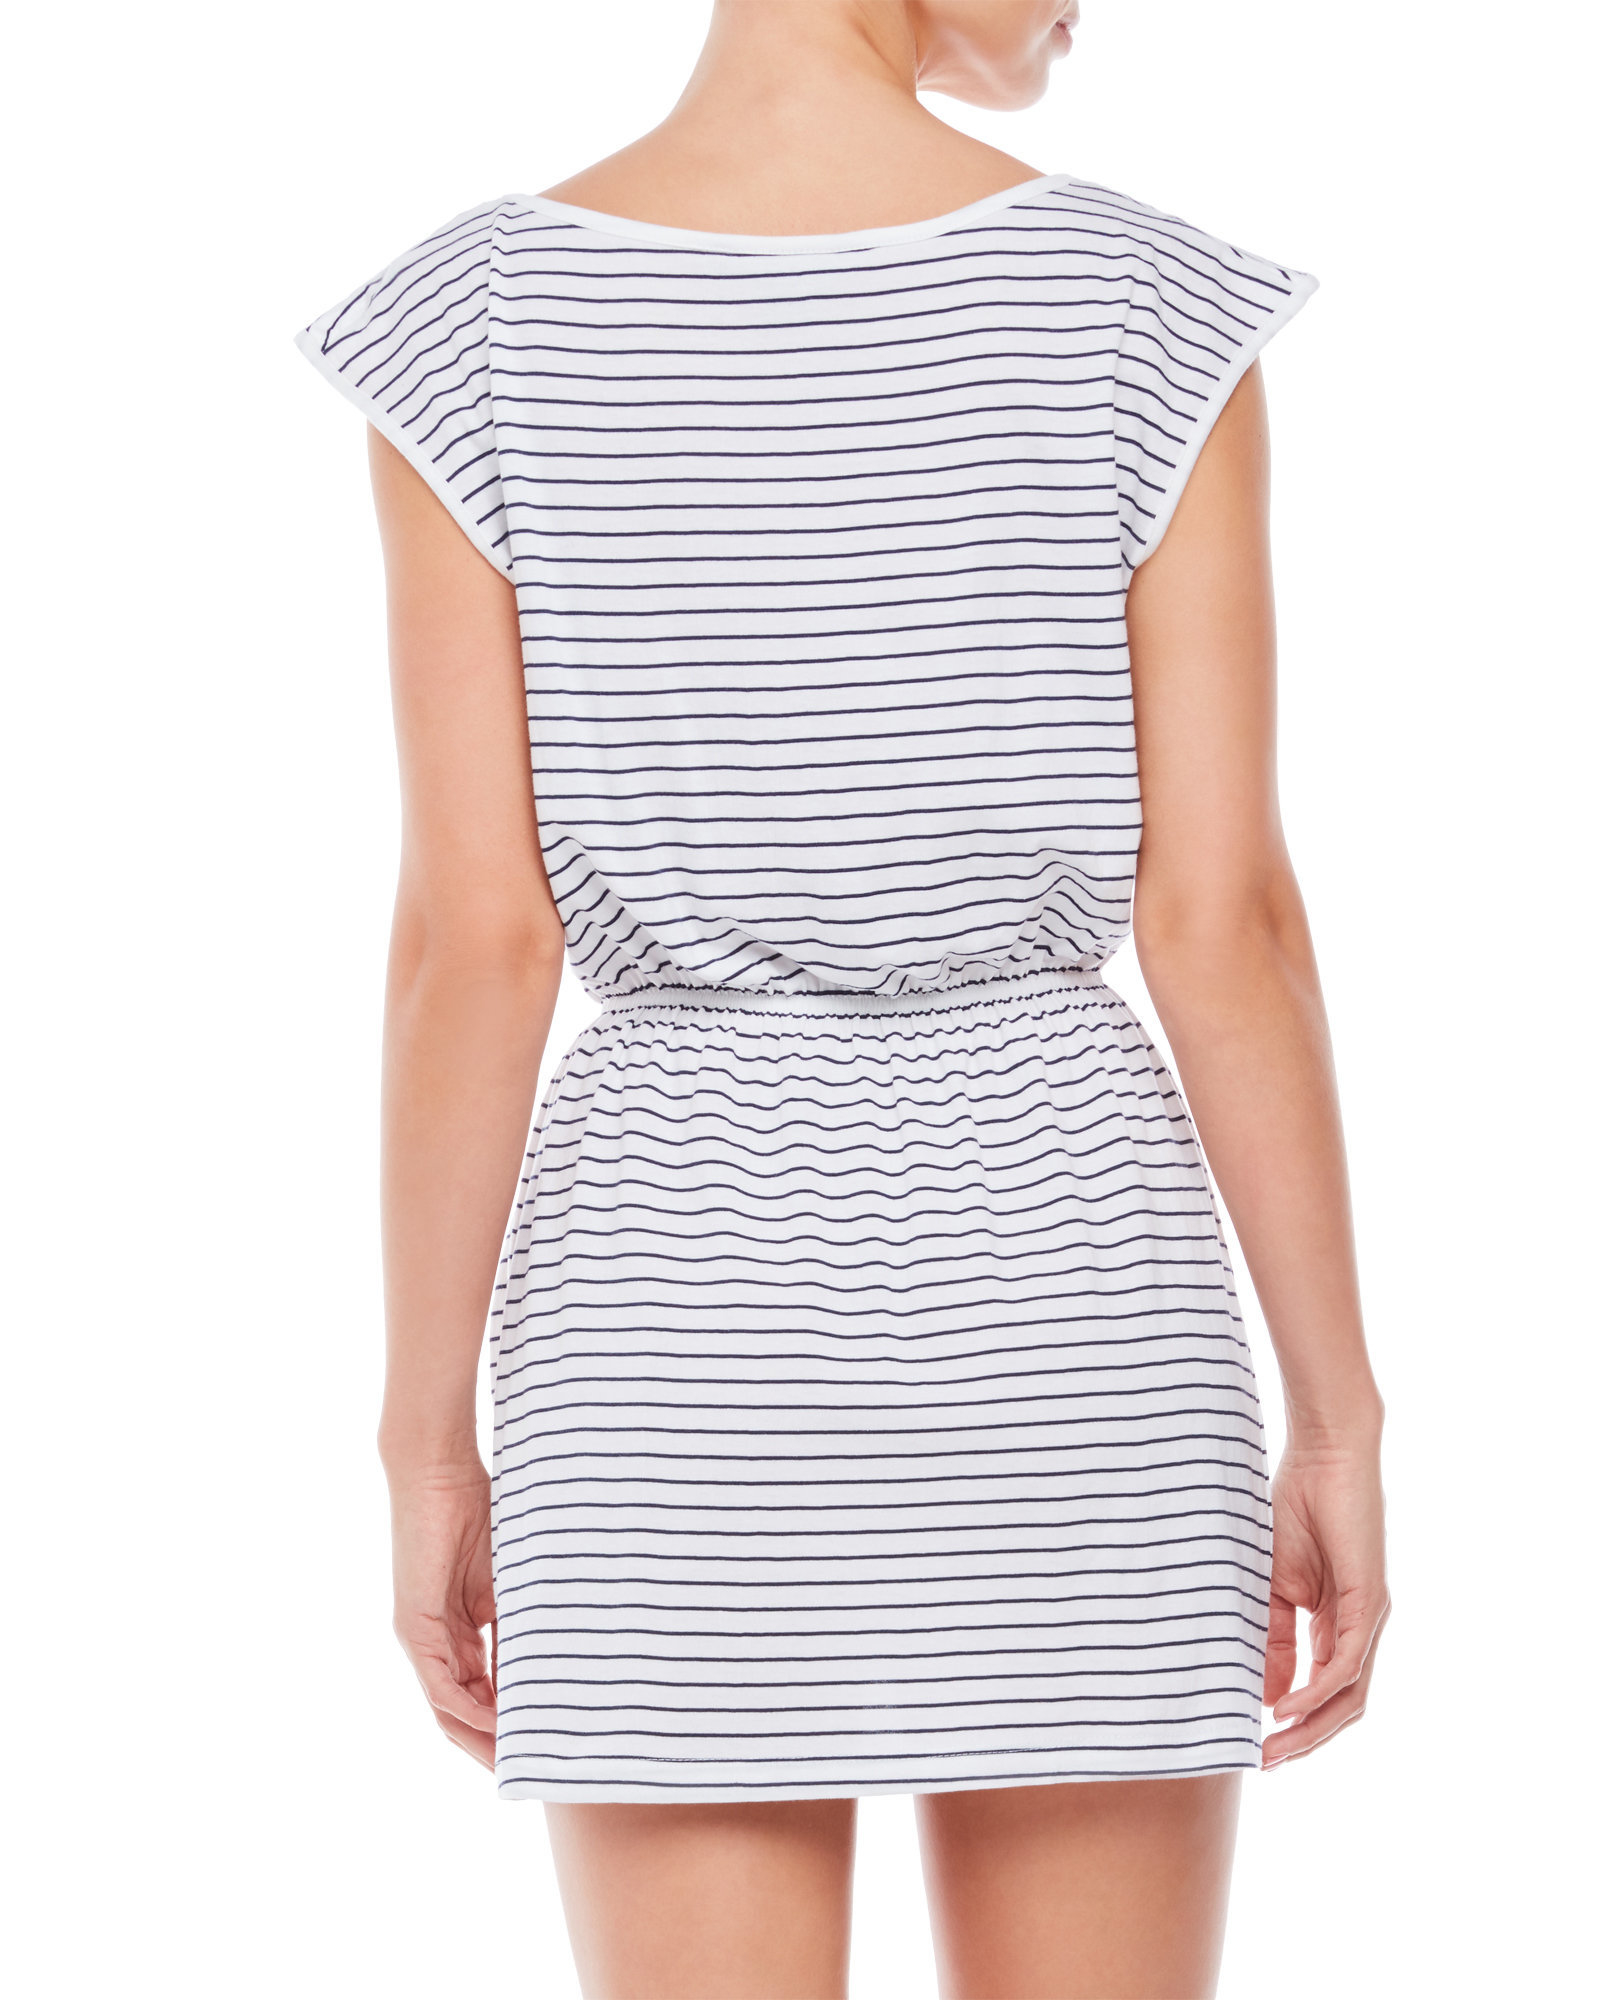 French connection material girl striped t shirt dress in for French connection t shirt dress